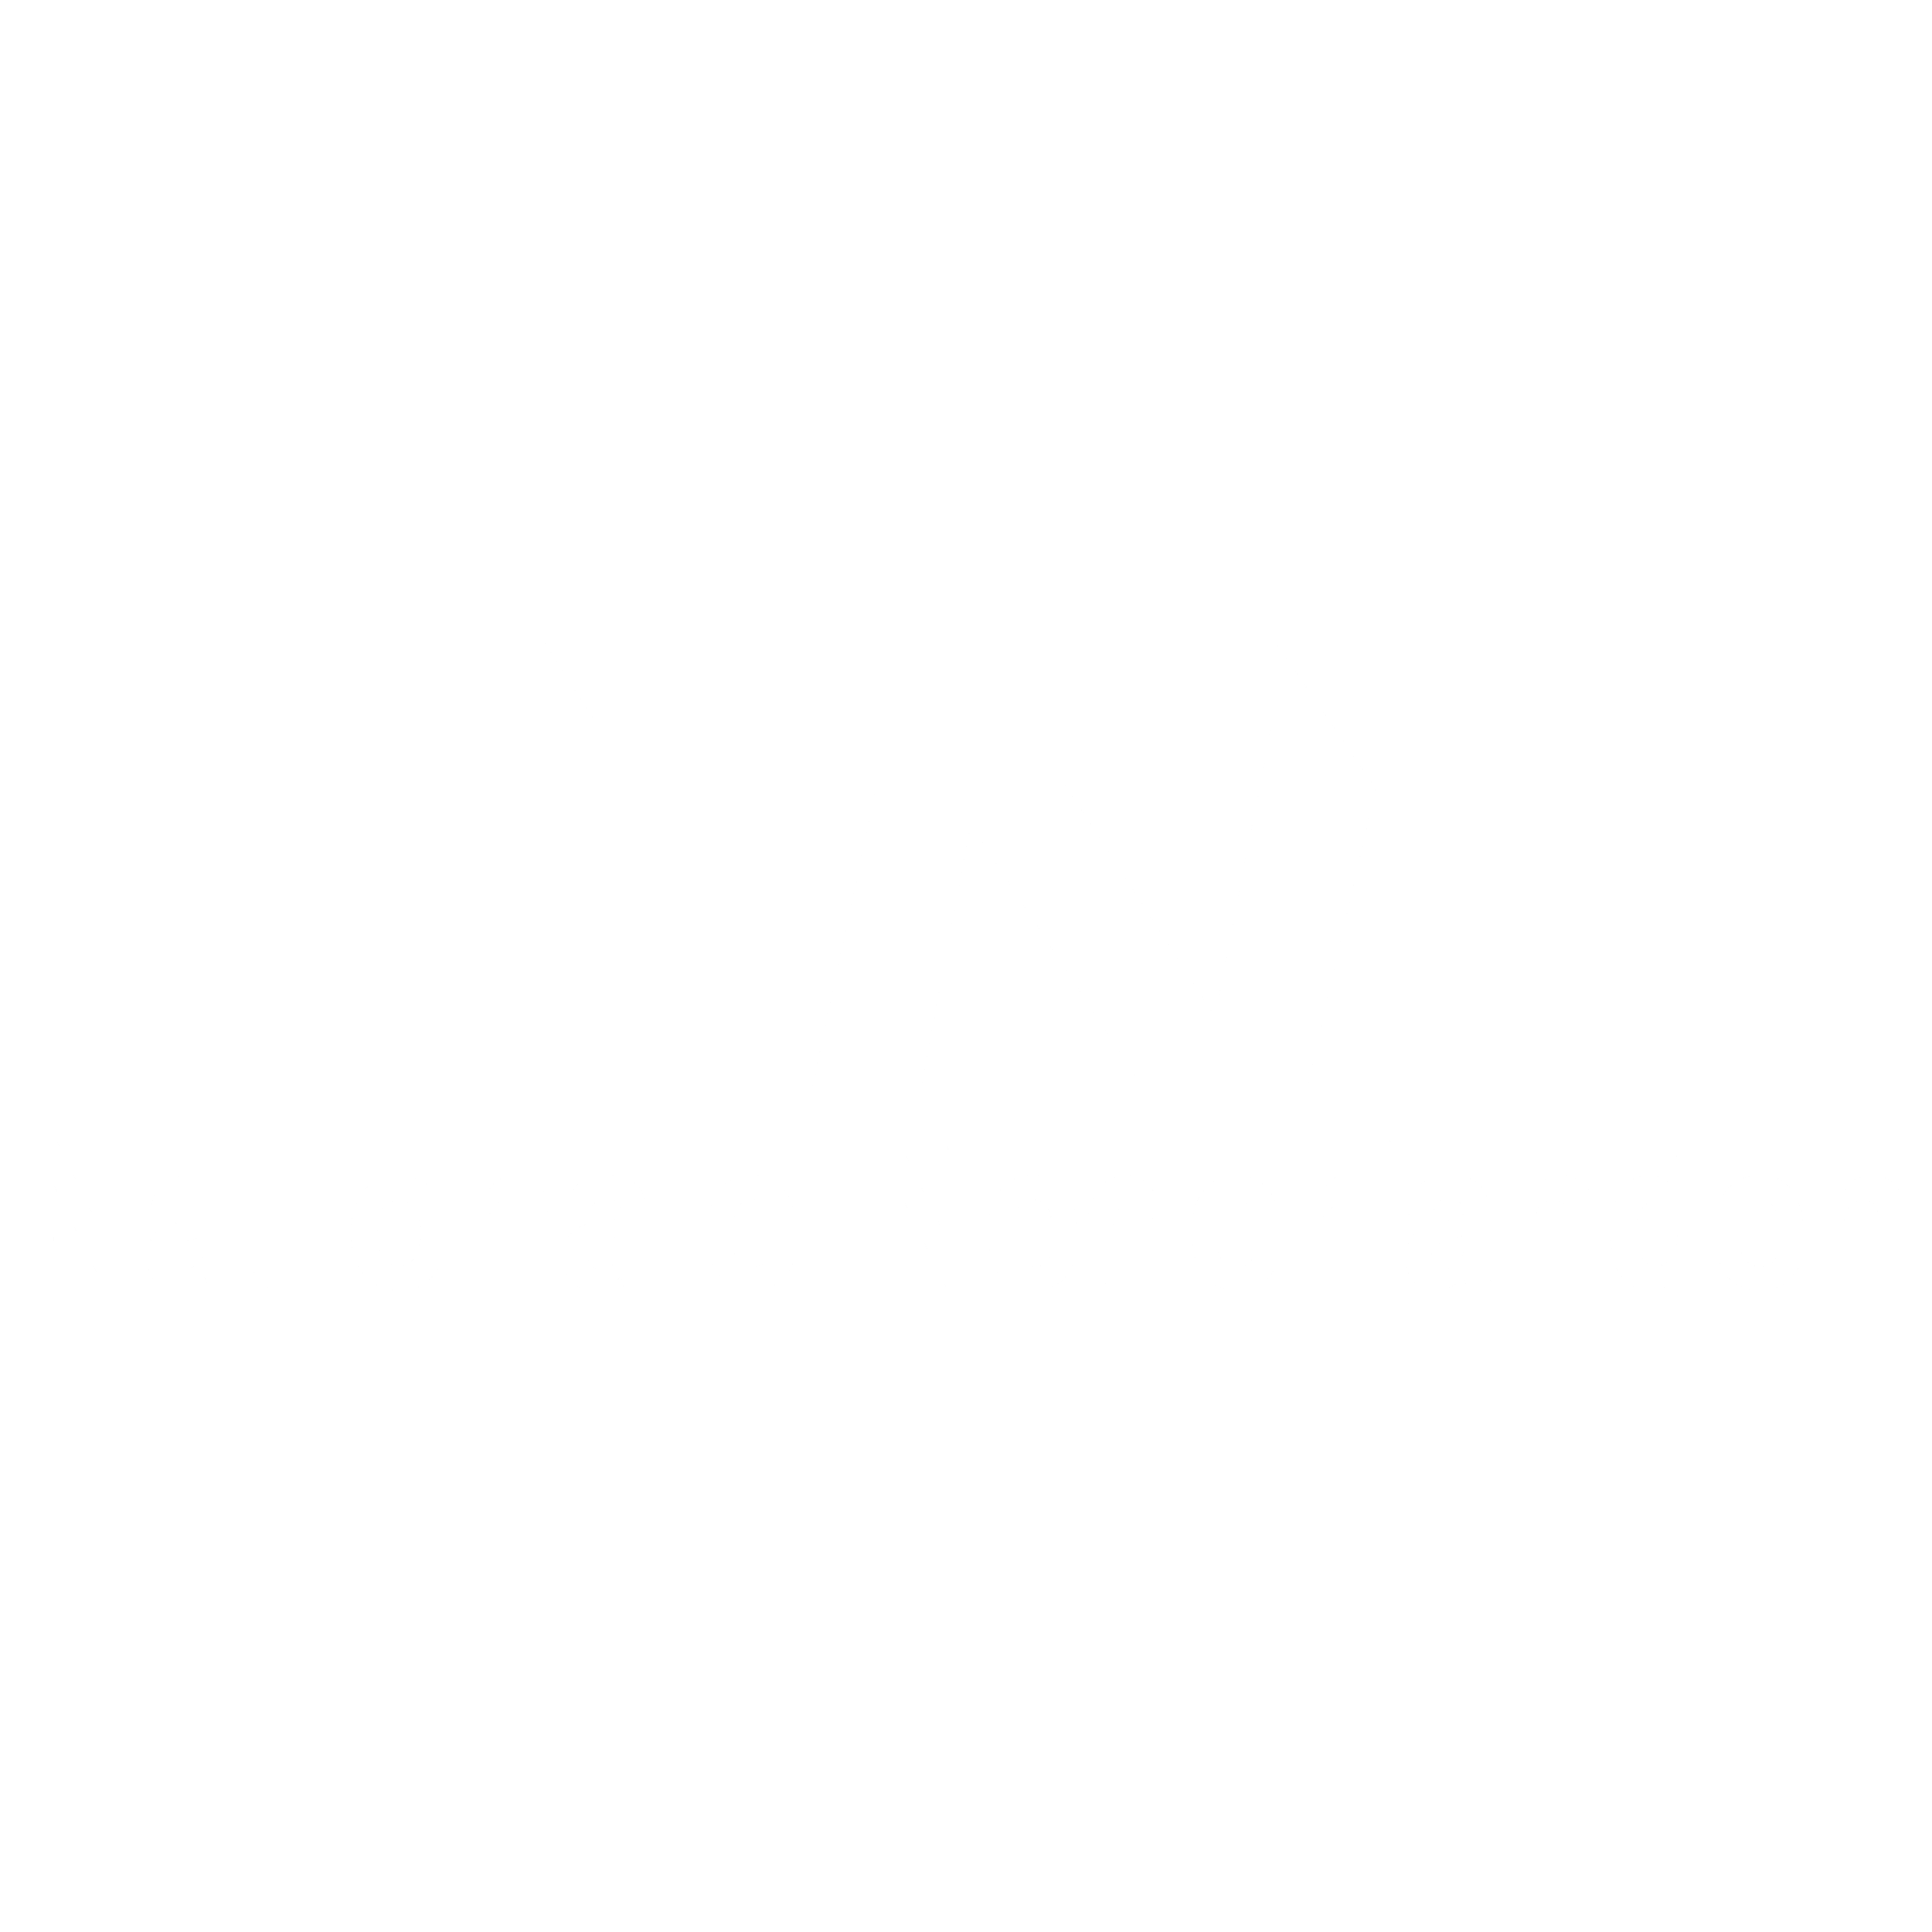 nationale-nederlanden-1-logo-black-and-white.png